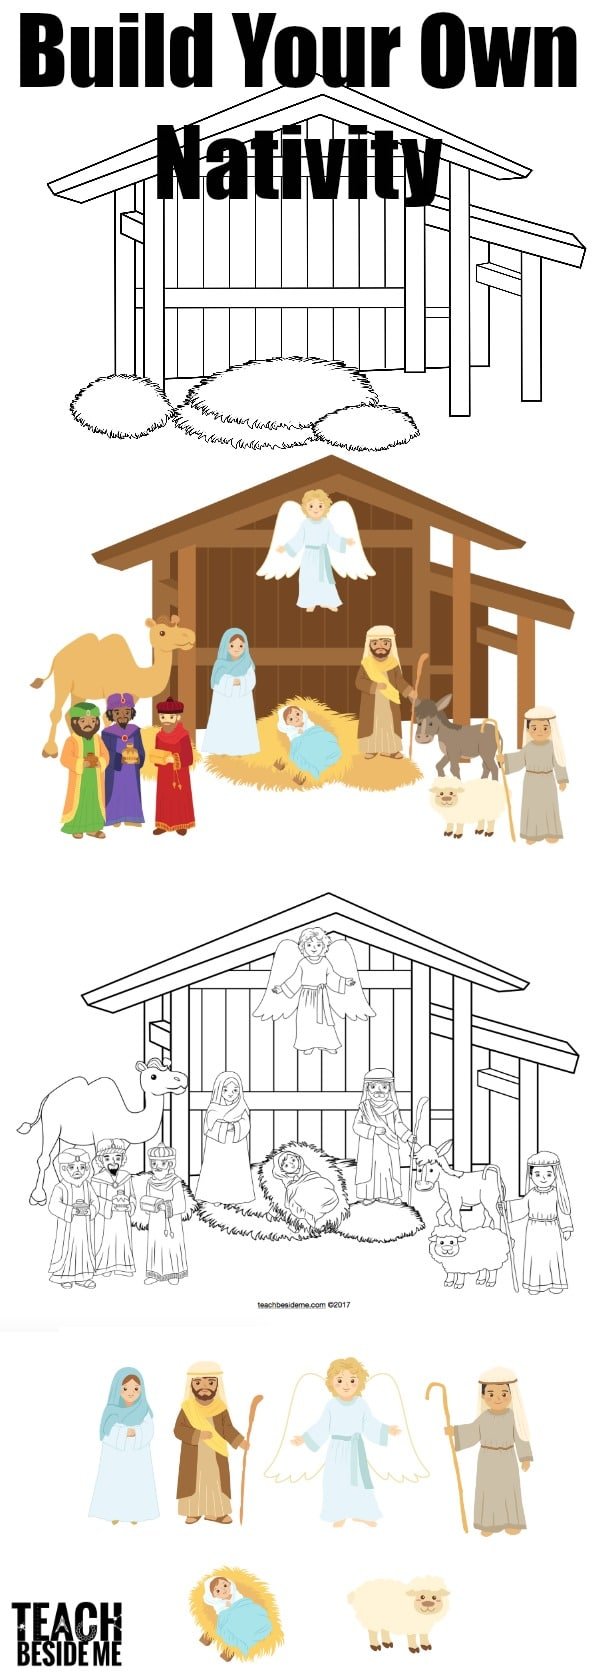 Build Your Own Nativity